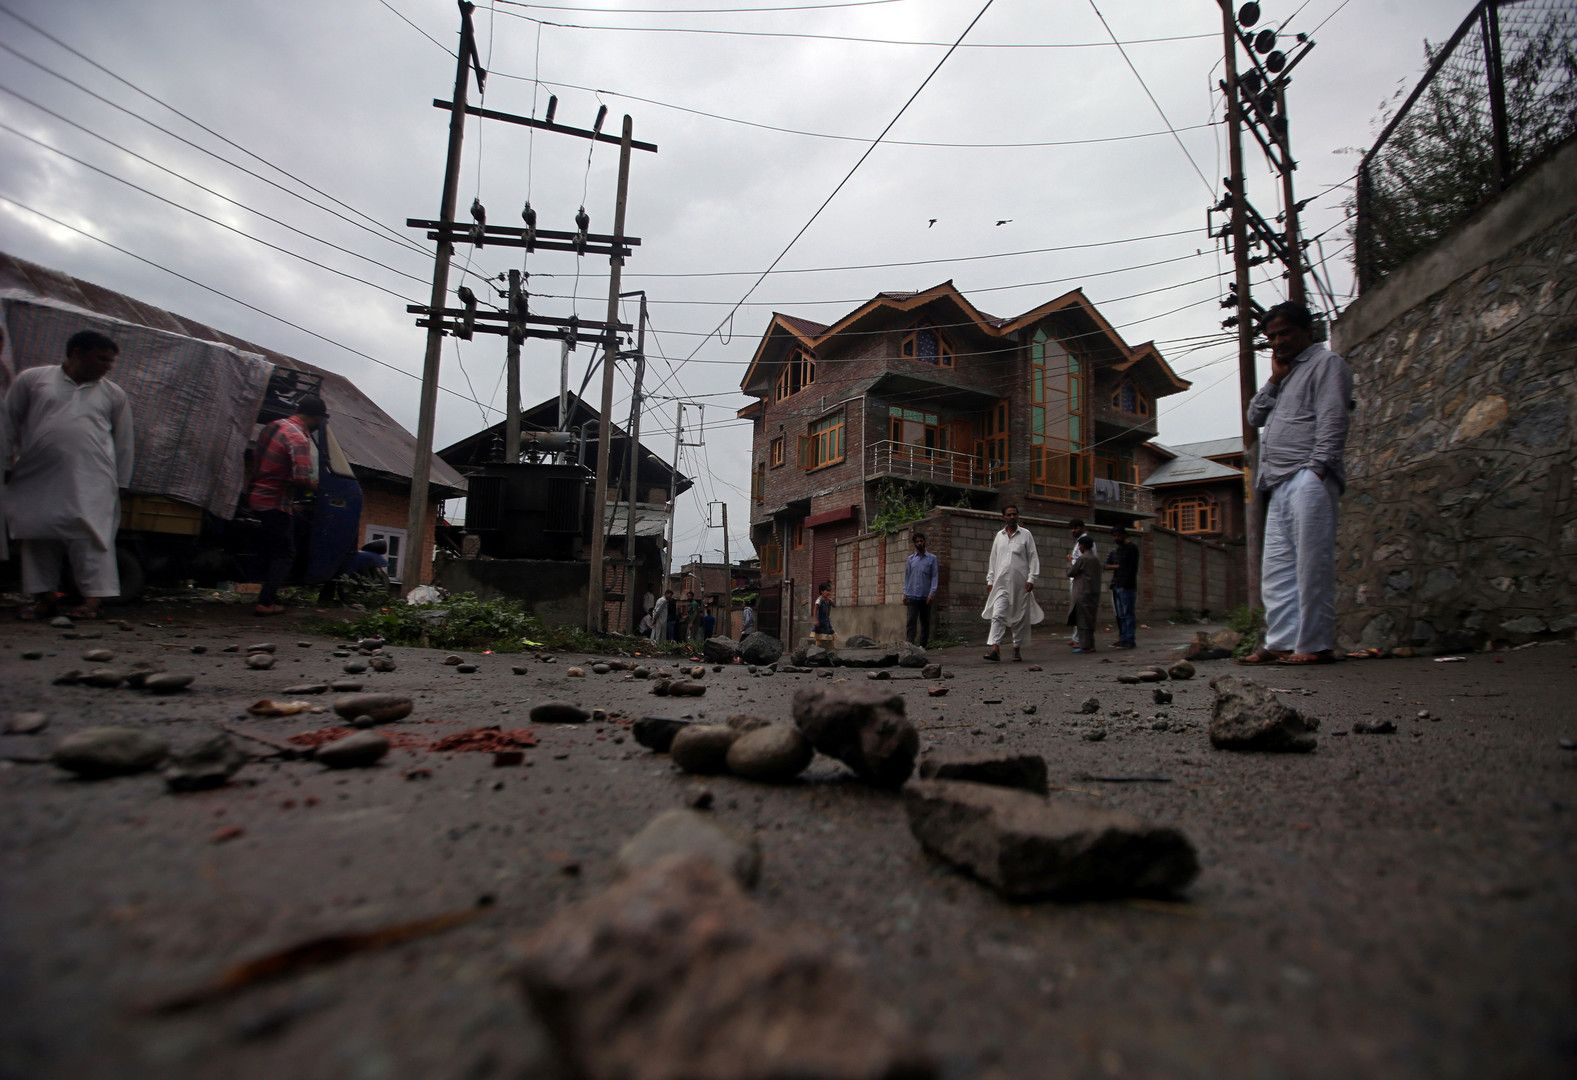 People walk on a road covered with stones and pieces of brick during restrictions in Srinagar, August 14. REUTERS/Danish Ismail